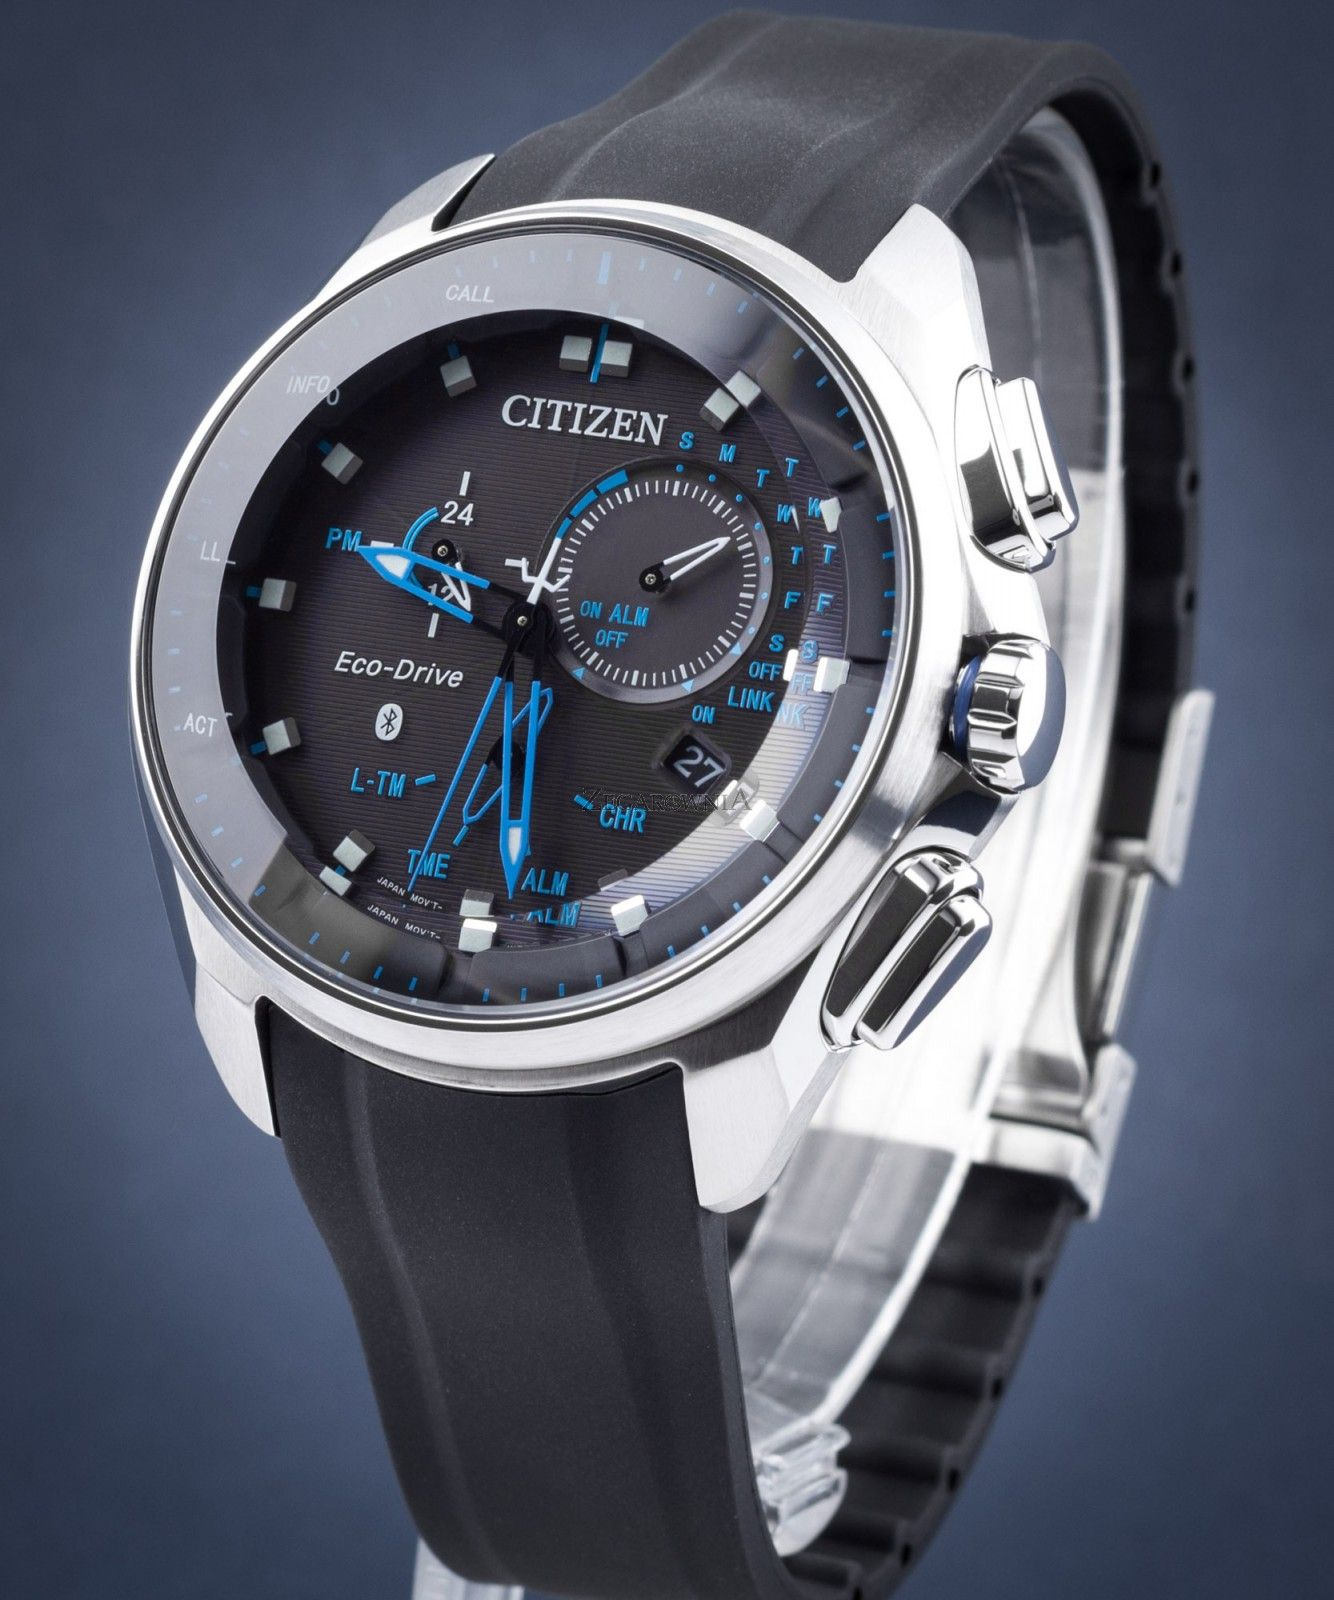 6e0d6c24de8 Zegarek męski Citizen Bluetooth Eco-Drive - Citizen-BZ1020-14E